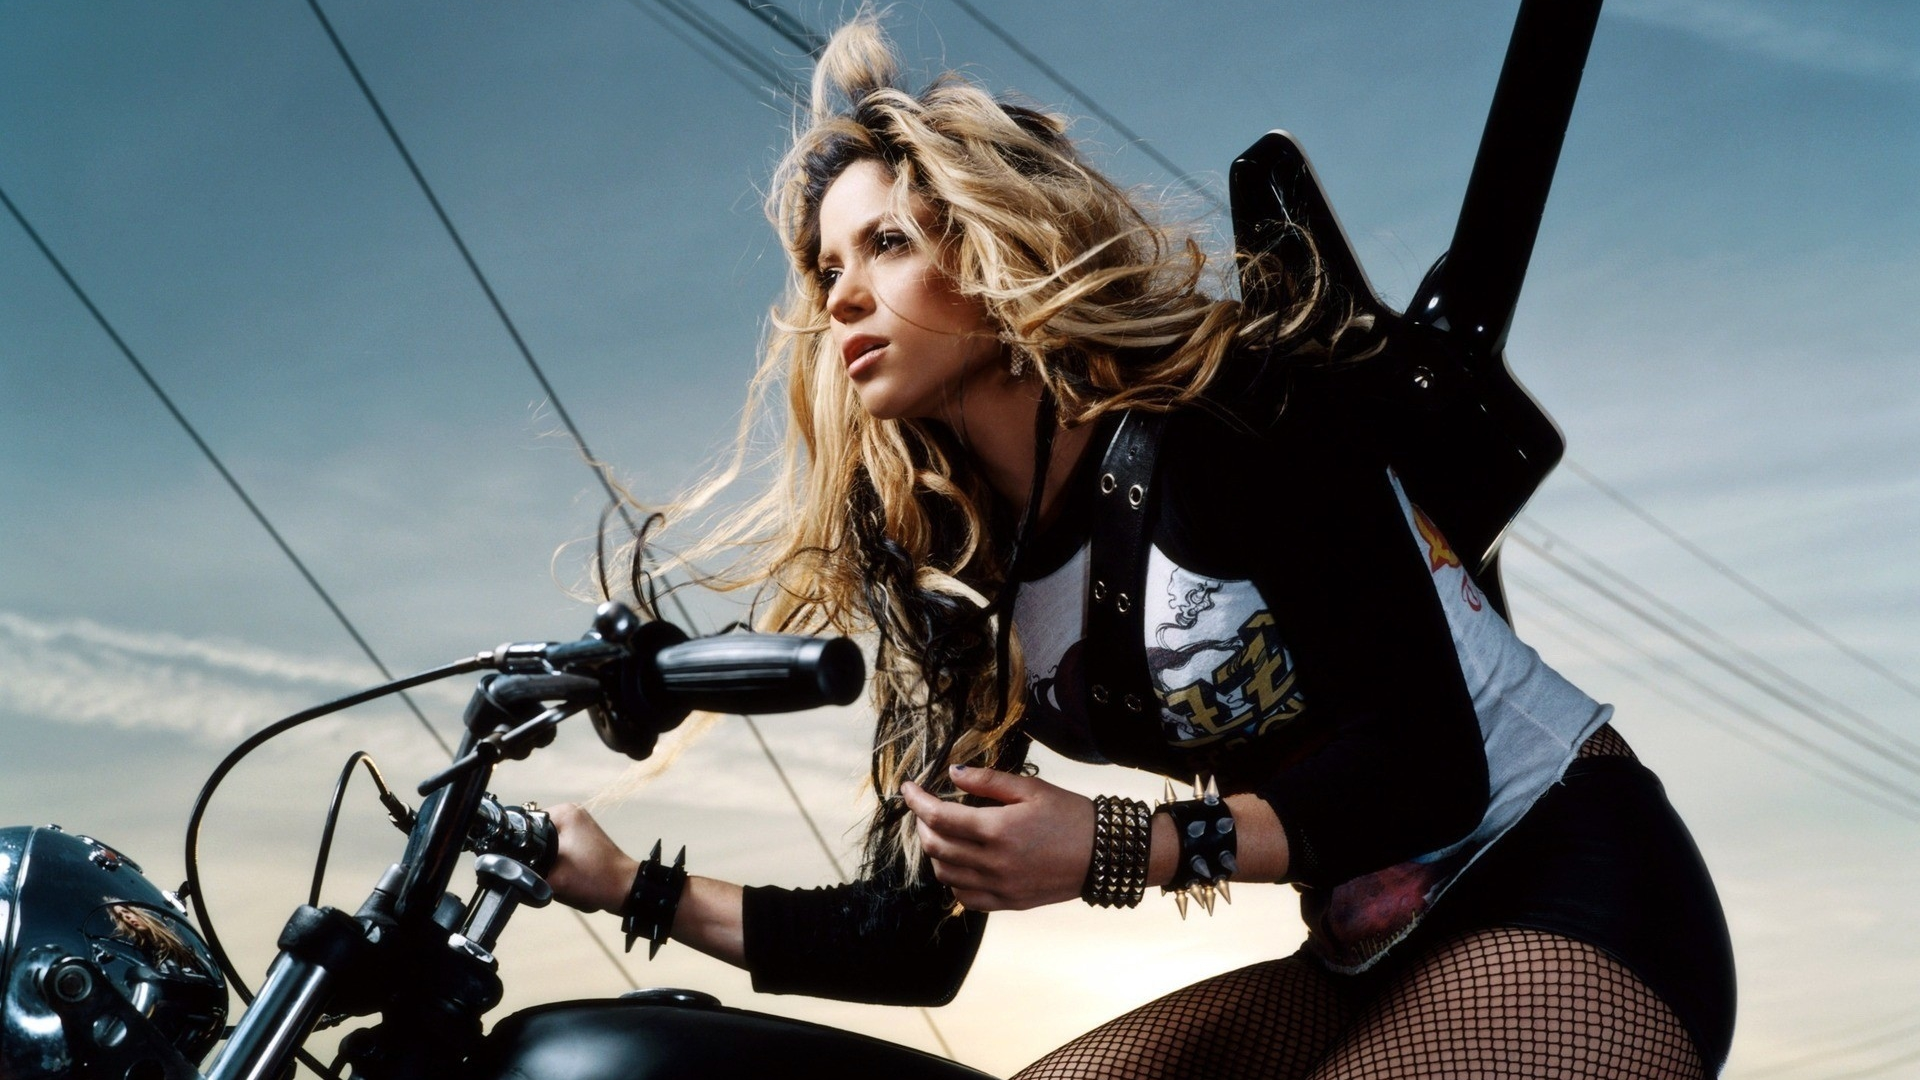 1920x1080 Shakira On Bike Wallpaper 1080p Laptop Full Hd